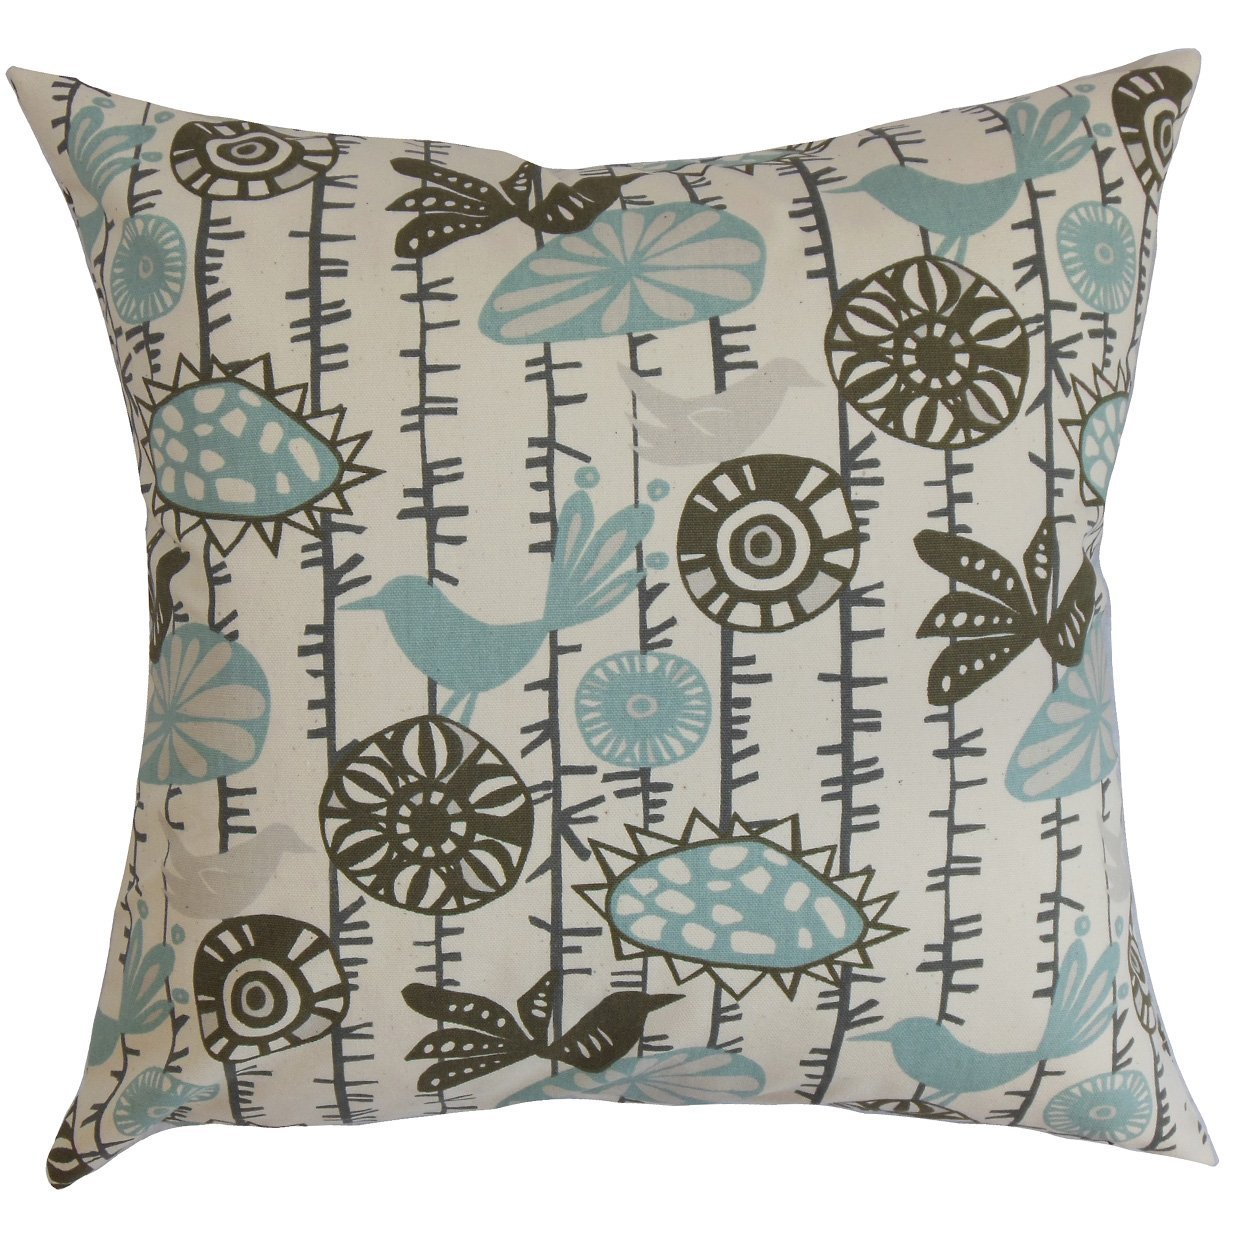 King//20 x 36 The Pillow Collection Nettle Floral Bedding Sham Village Blue Natural